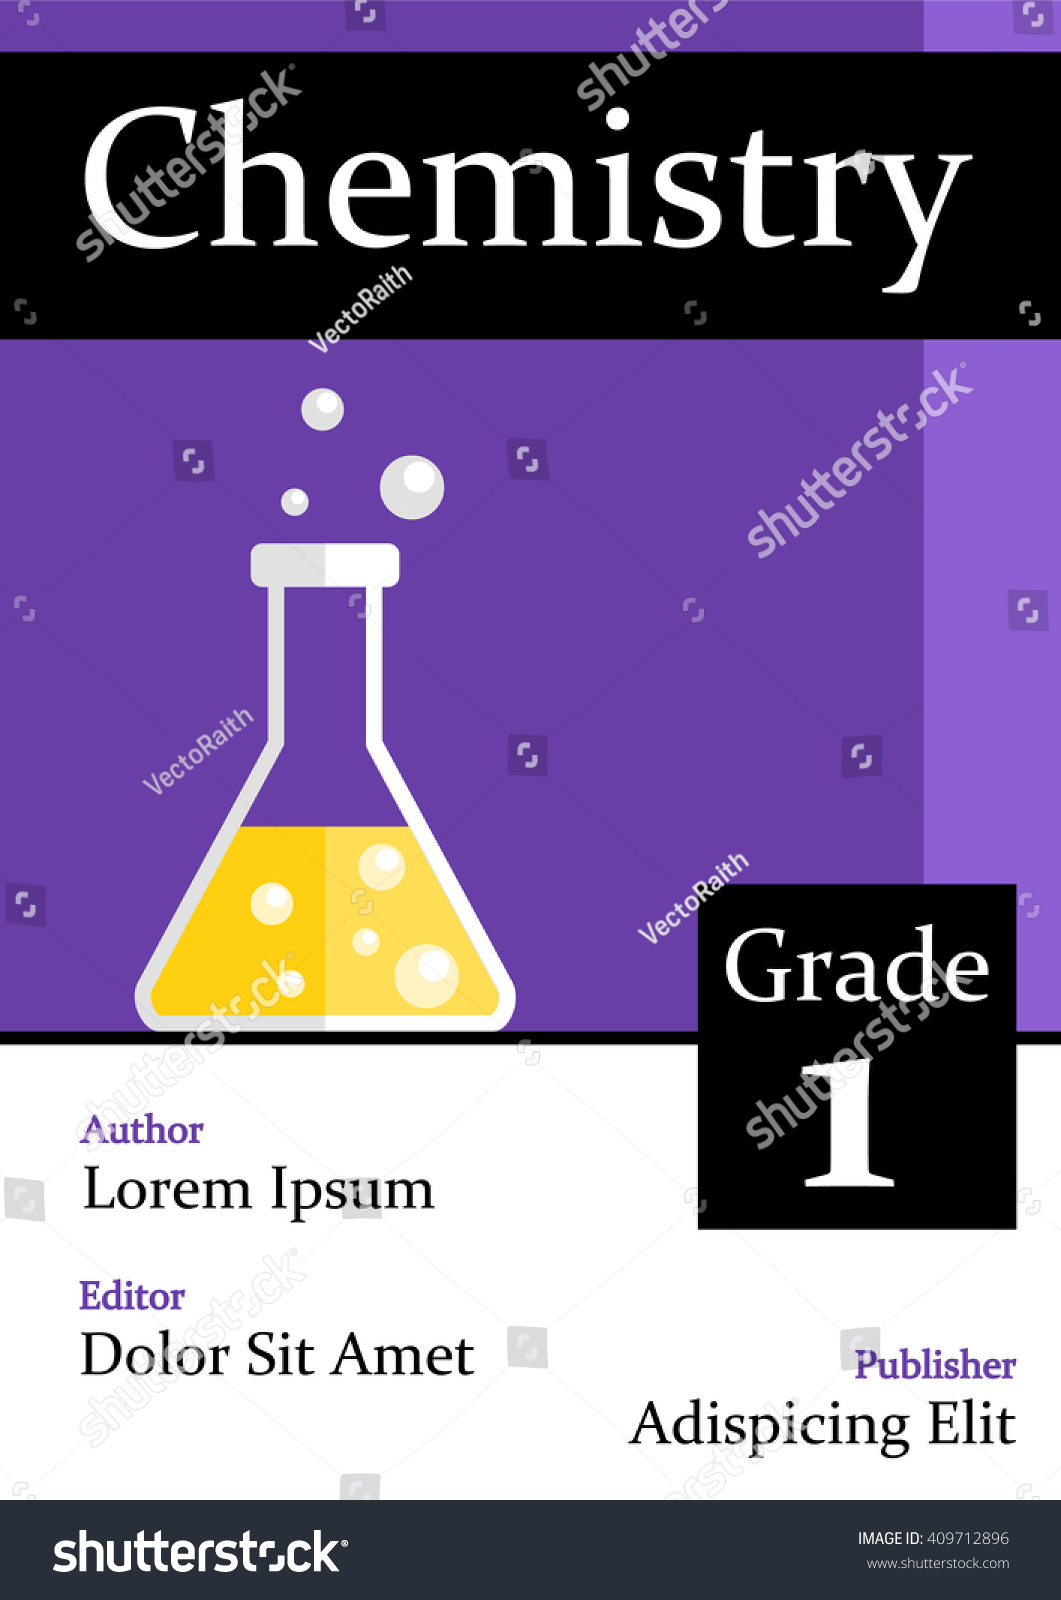 Illustrated Book Cover Vector ~ A chemistry book cover flat style stock vector royalty free